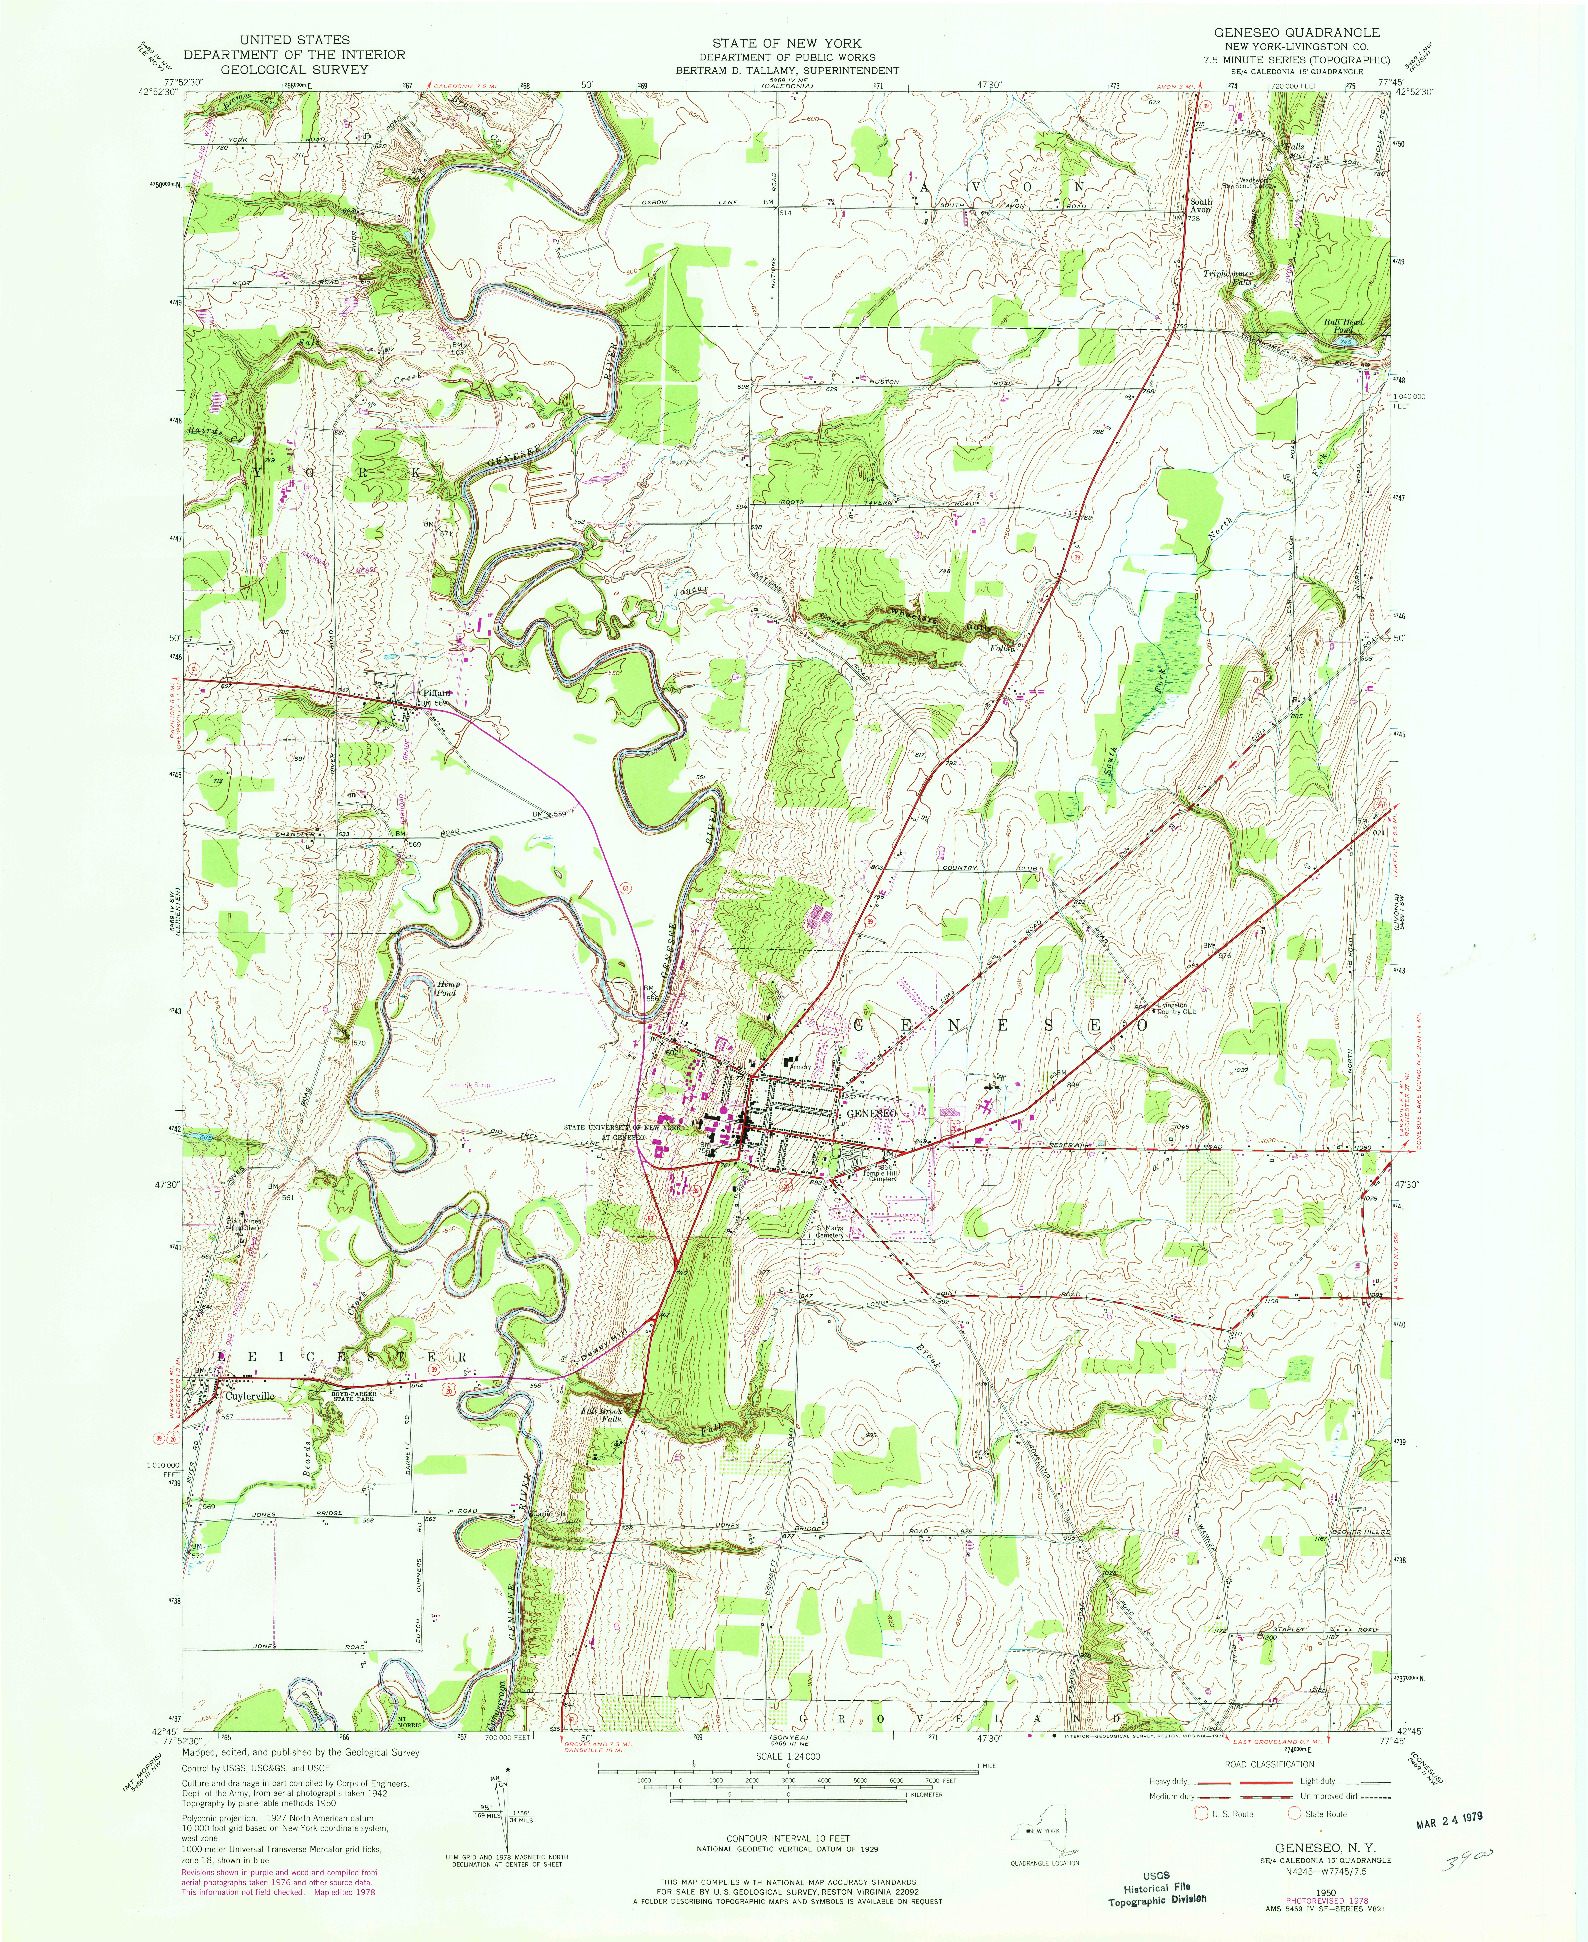 USGS 1:24000-SCALE QUADRANGLE FOR GENESEO, NY 1950 on white city map, ottawa township map, southern cayuga map, gilboa map, princeville map, frewsburg map, mcpherson map, spencerport map, duquoin map, rock island district map, montour falls map, gananda map, livonia map, grove map, hesston map, groveland correctional facility map, hammondsport map, fairport map, middlesex map, genesee valley map,